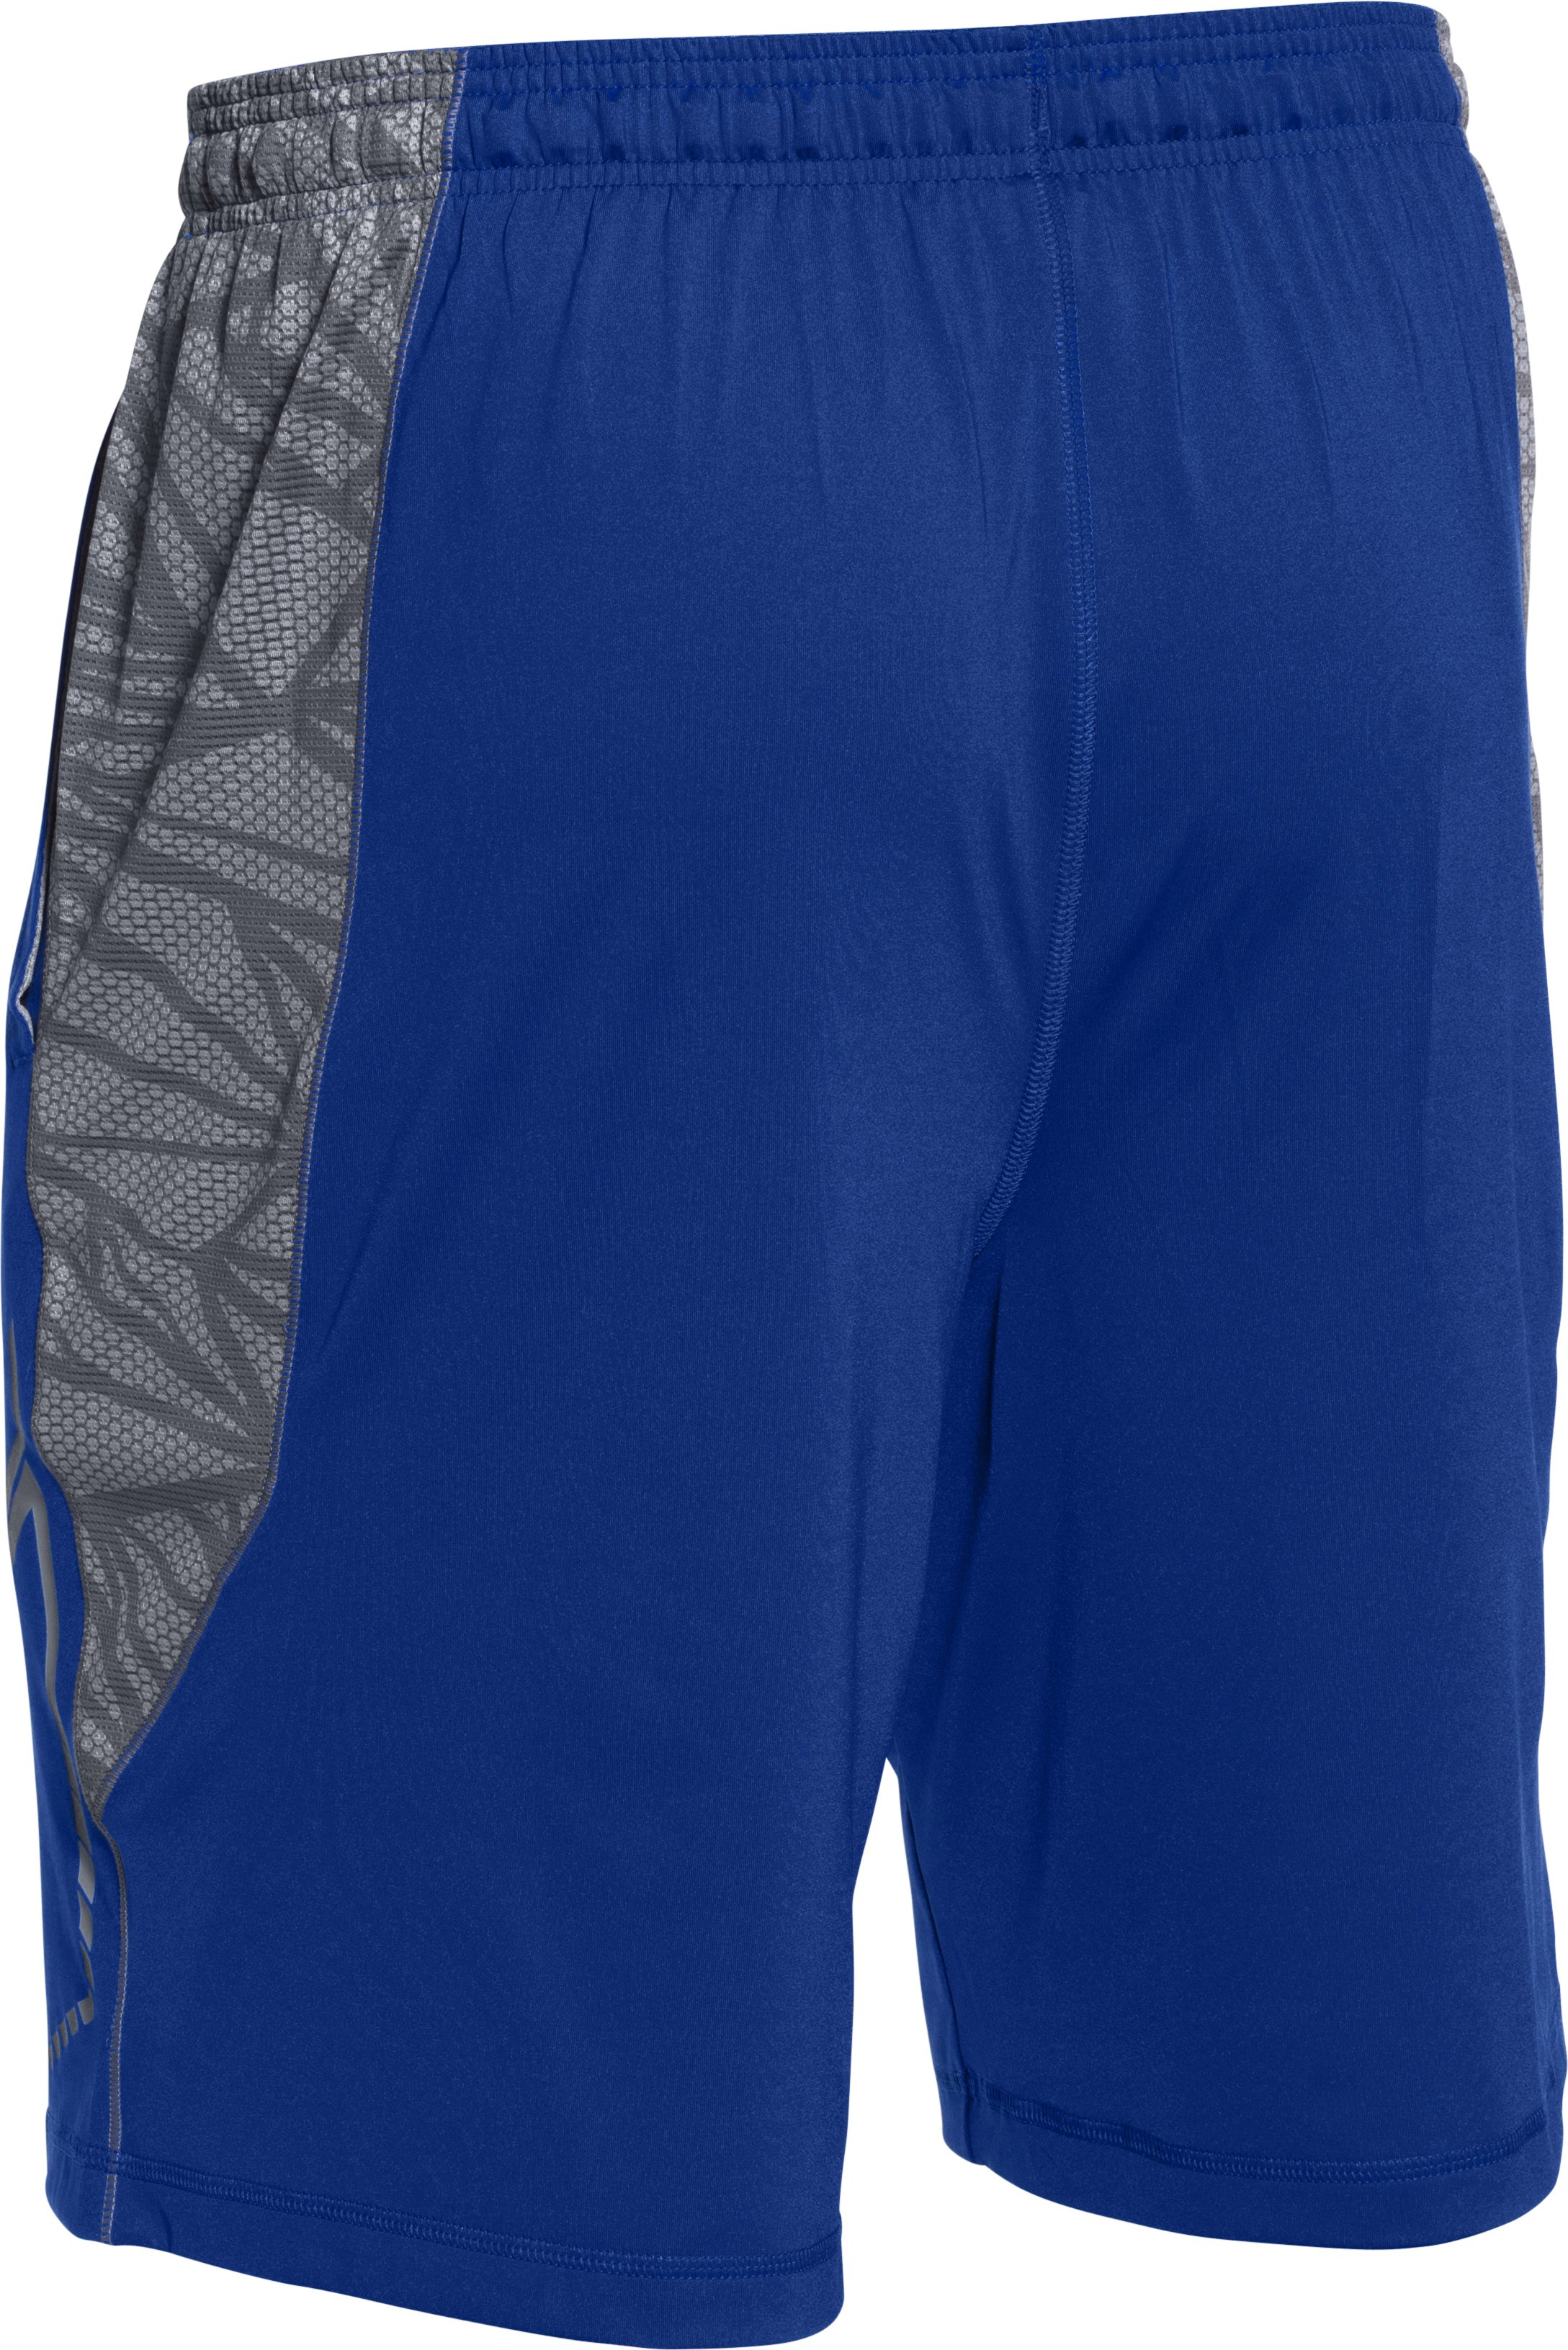 Men's UA Undeniable Baseball Training Shorts, Royal,